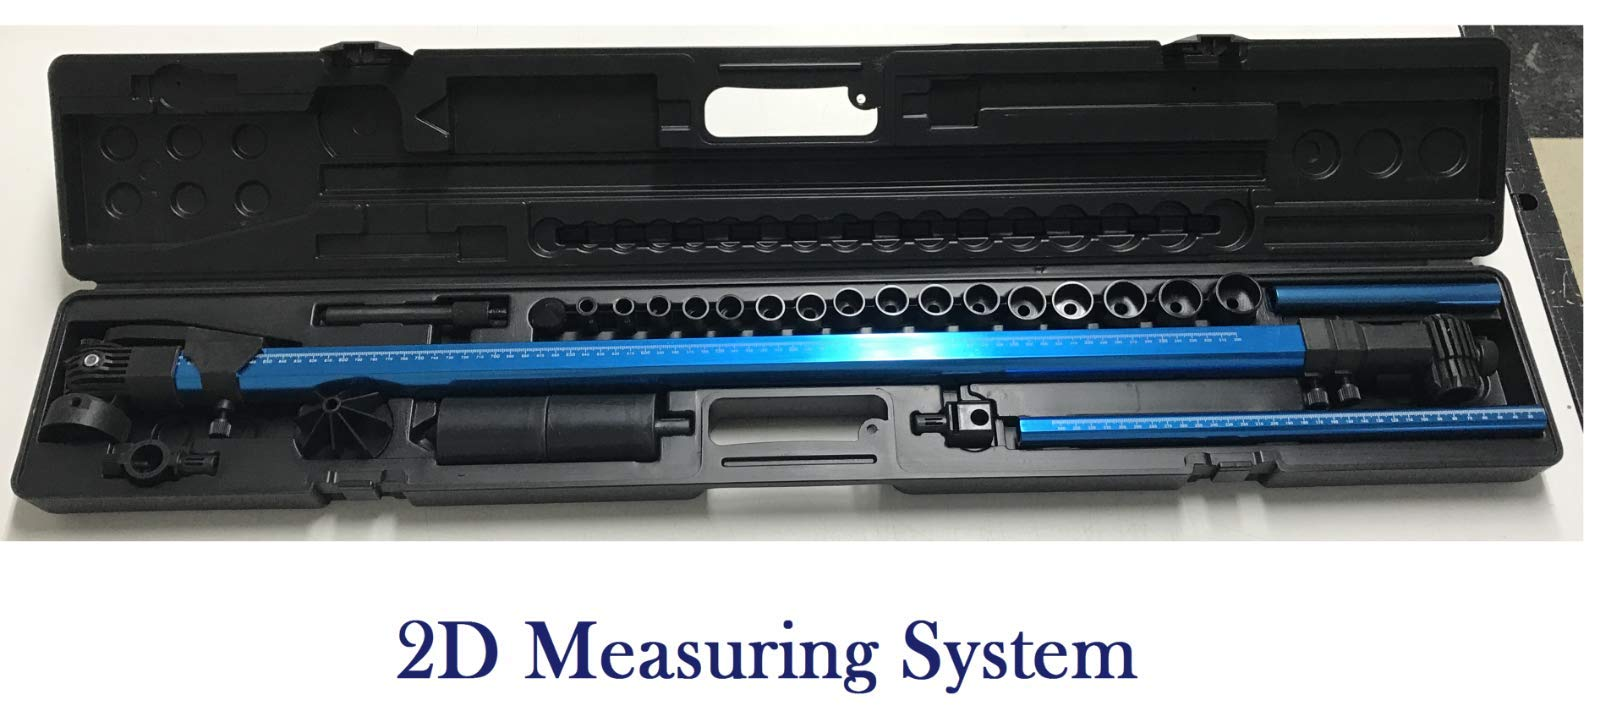 5 Star 2D Measuring System AUTO Body Frame Machine Tram Gauge Perfect Solution by 5 Star (Image #1)